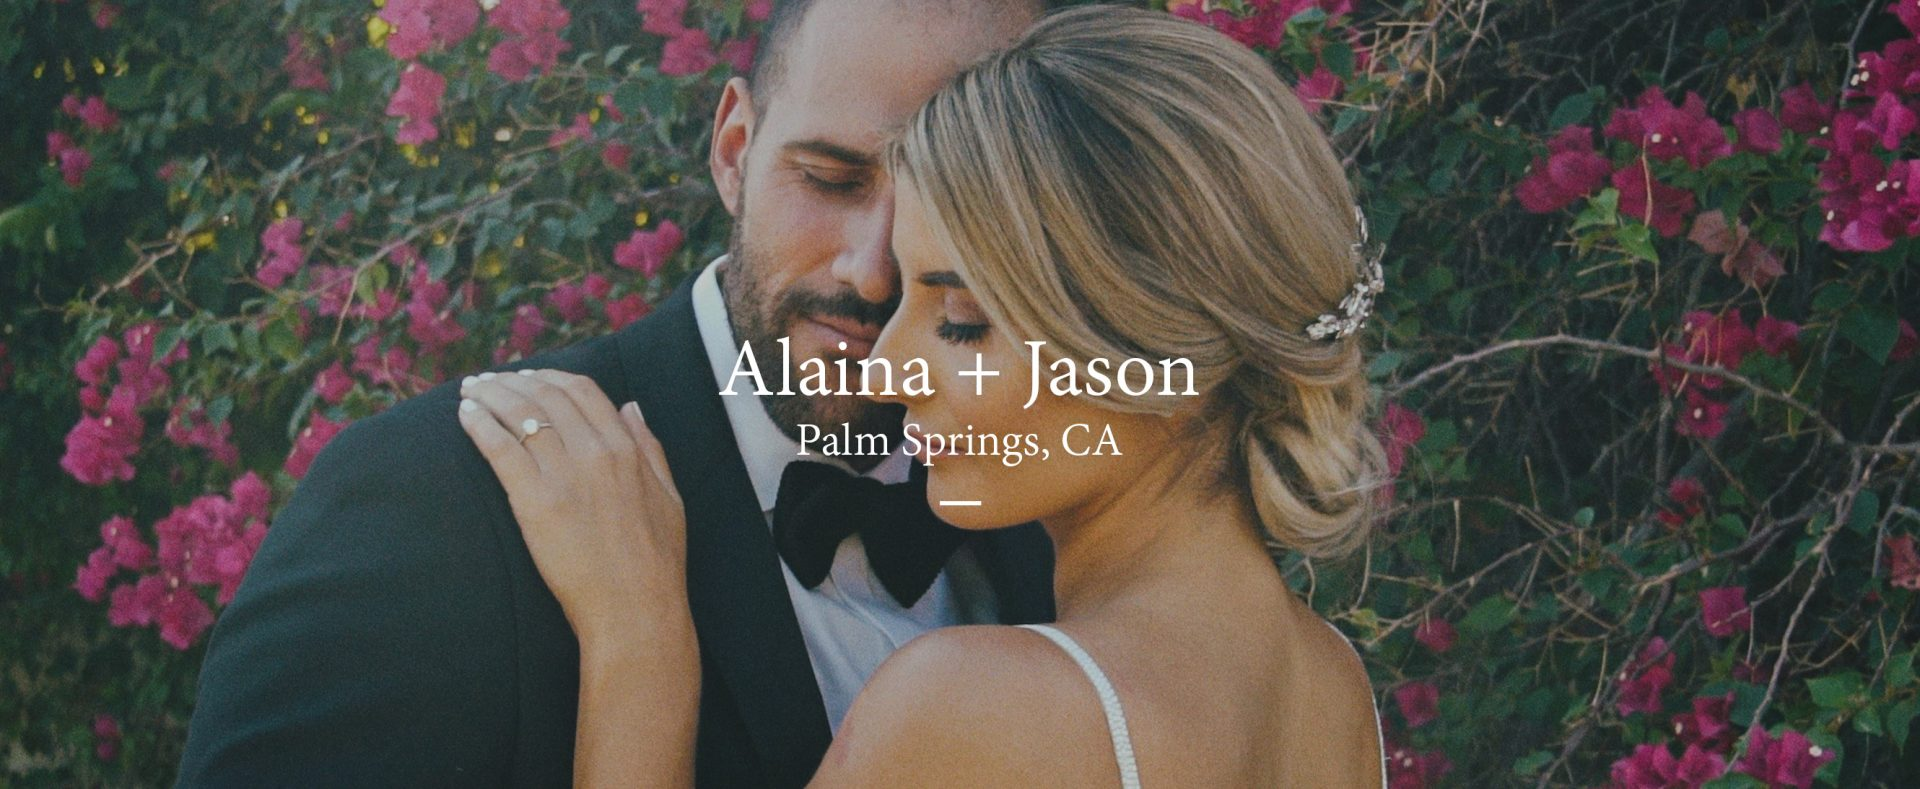 Alaina + Jason | Palm Springs, California | La Chureya Estate, Palm Springs